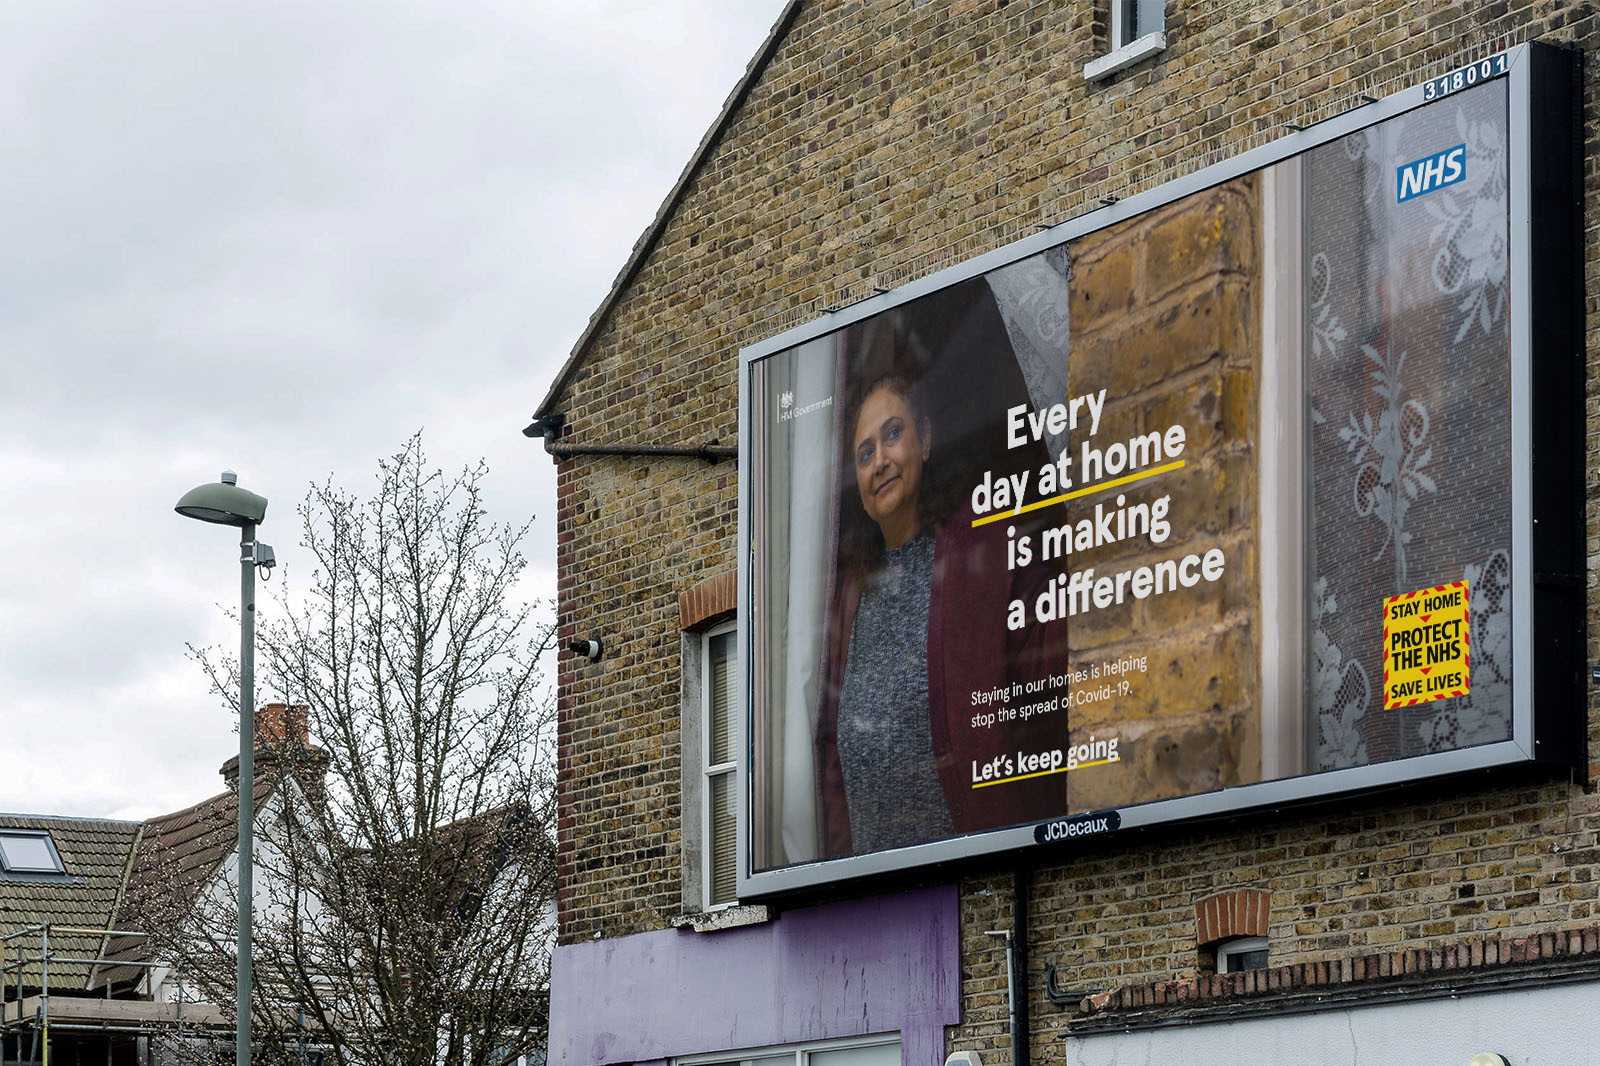 Billboard on side of house from part of the Let's Keep Going NHS and UK government Covid-19 Campaign showing women looking out of window